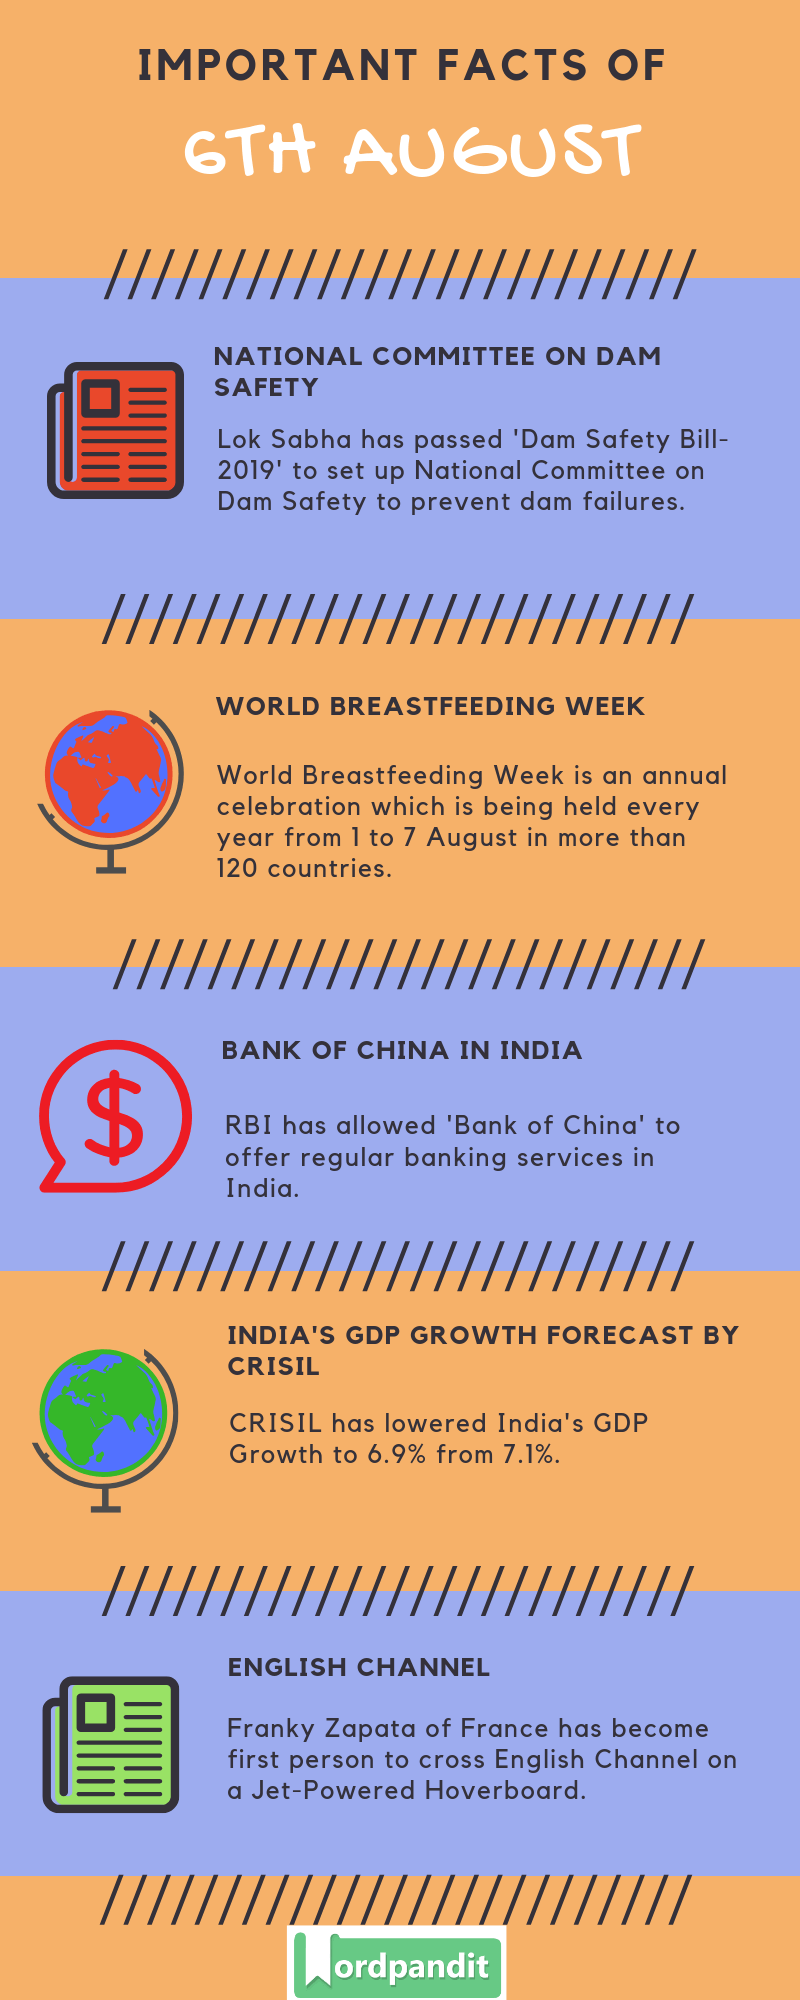 Daily Current Affairs 6 August 2019 Current Affairs Quiz 6 August 2019 Current Affairs Infographic